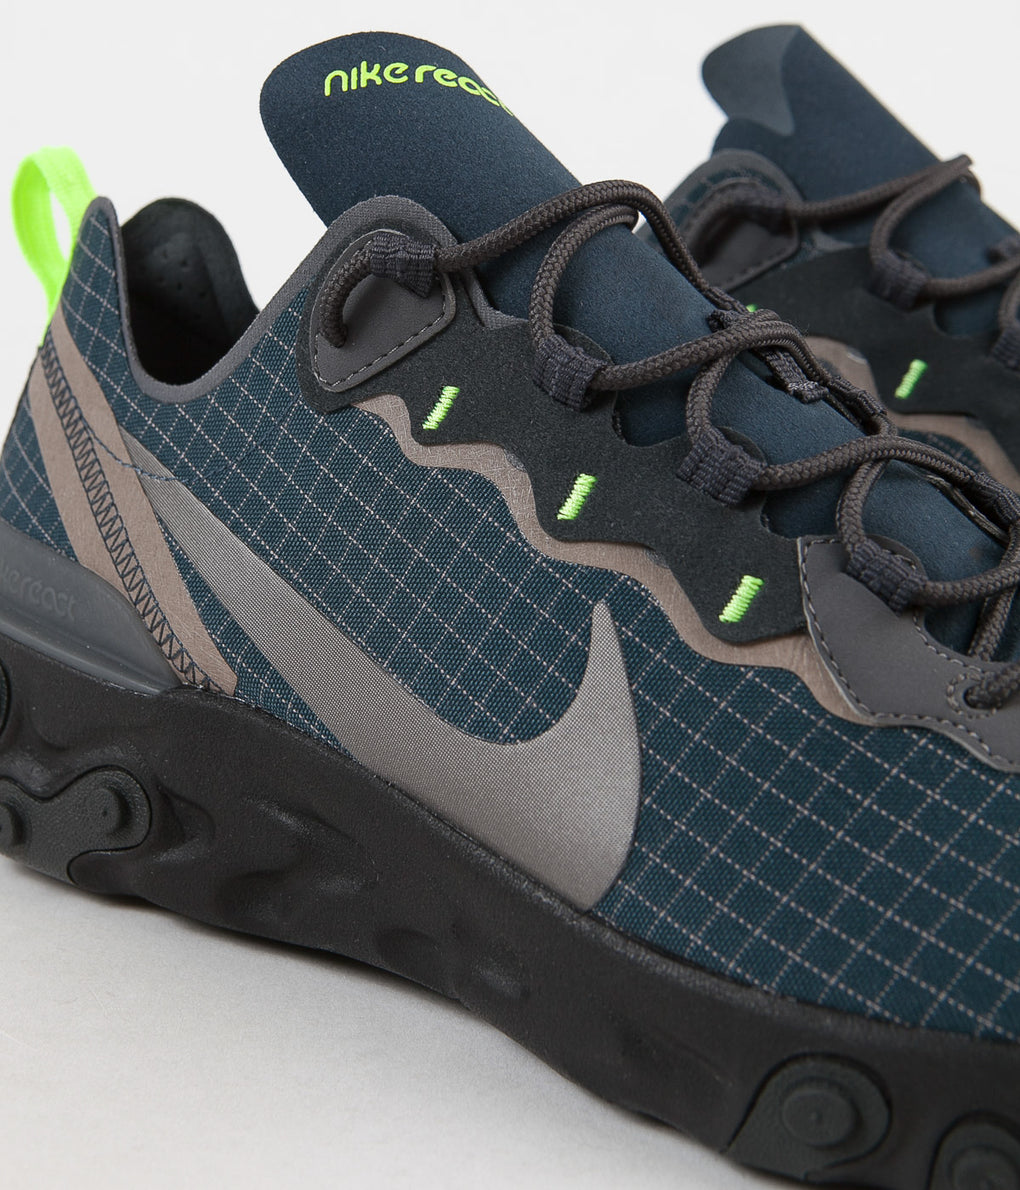 Nike React Element 55 Shoes - Armory Navy / Metallic Dark Grey - Volt